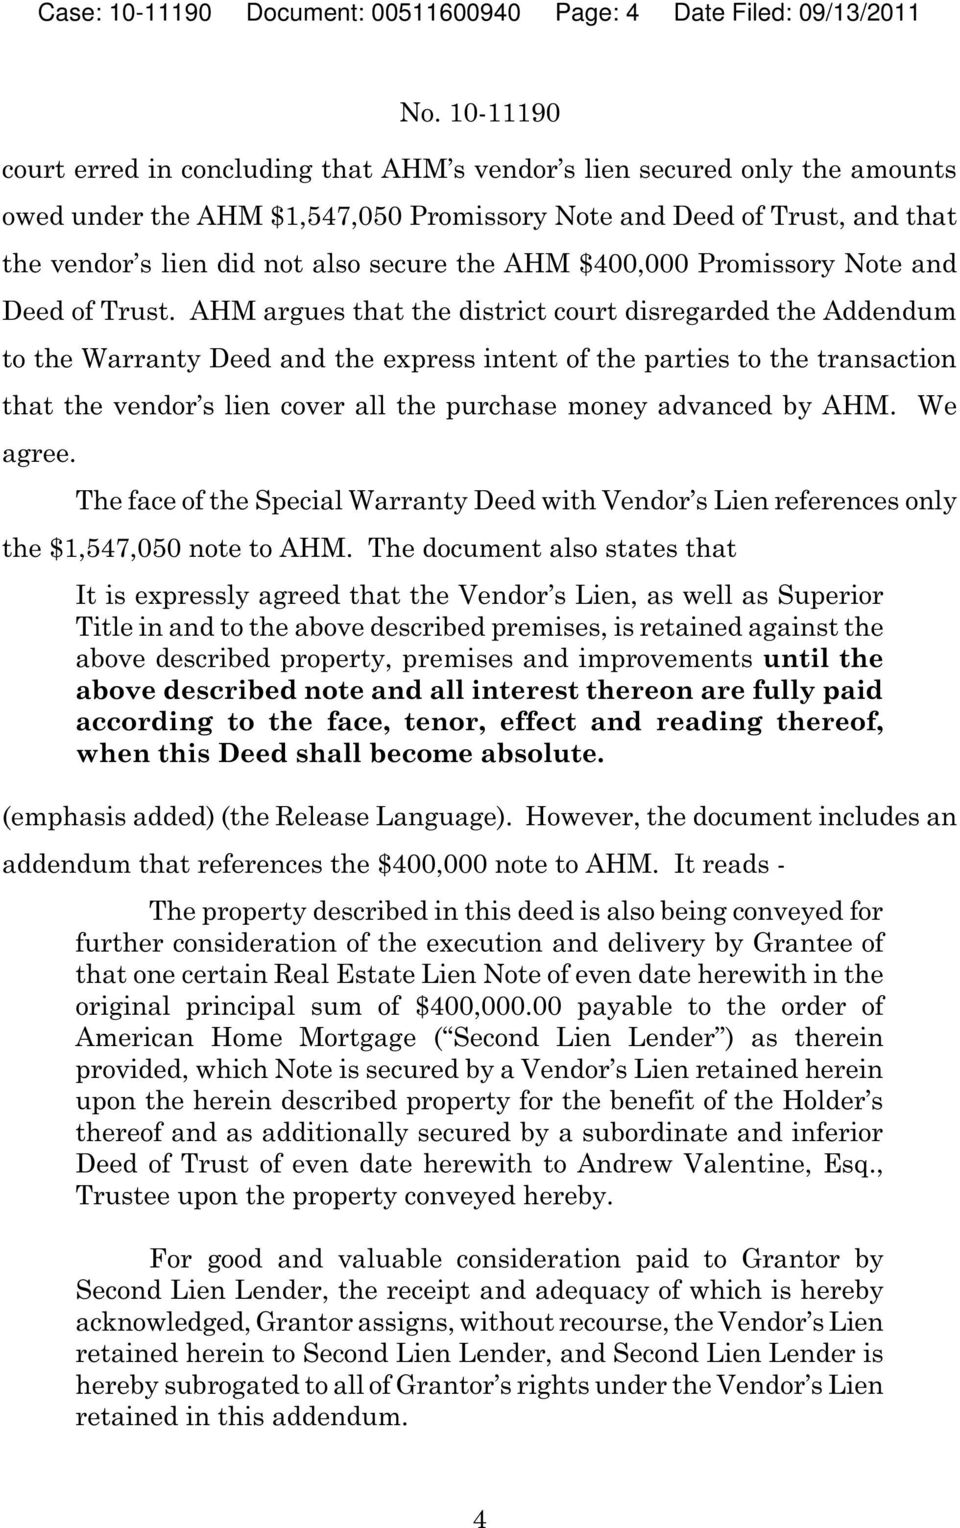 AHM argues that the district court disregarded the Addendum to the Warranty Deed and the express intent of the parties to the transaction that the vendor s lien cover all the purchase money advanced